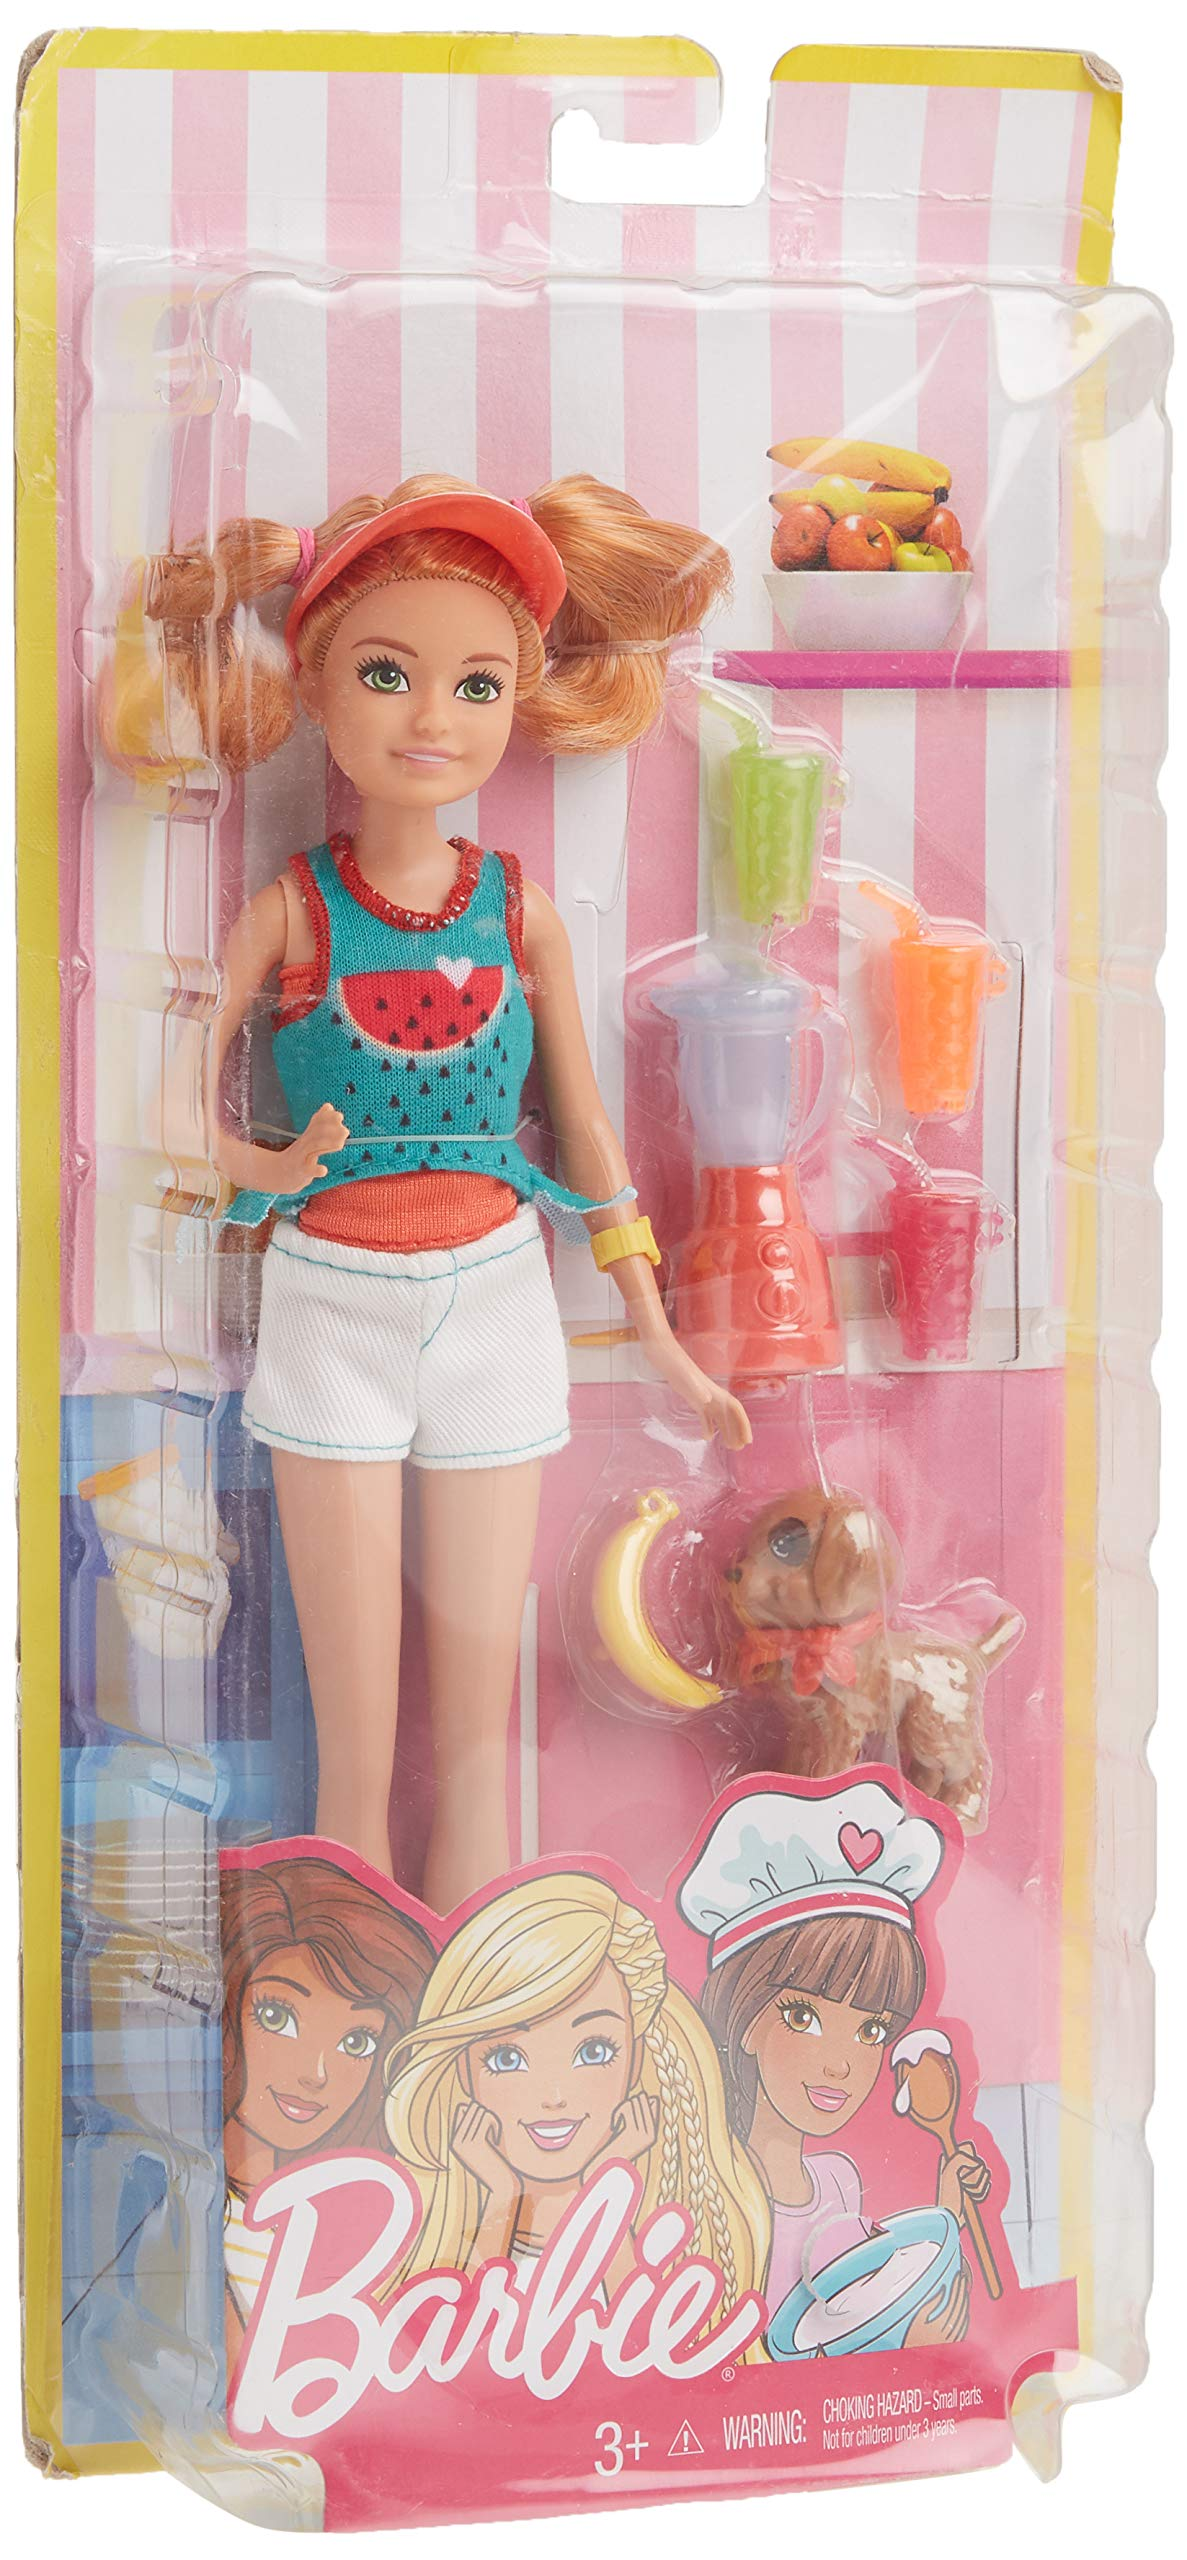 Barbie Stacie Doll Playset with Juice & Puppy